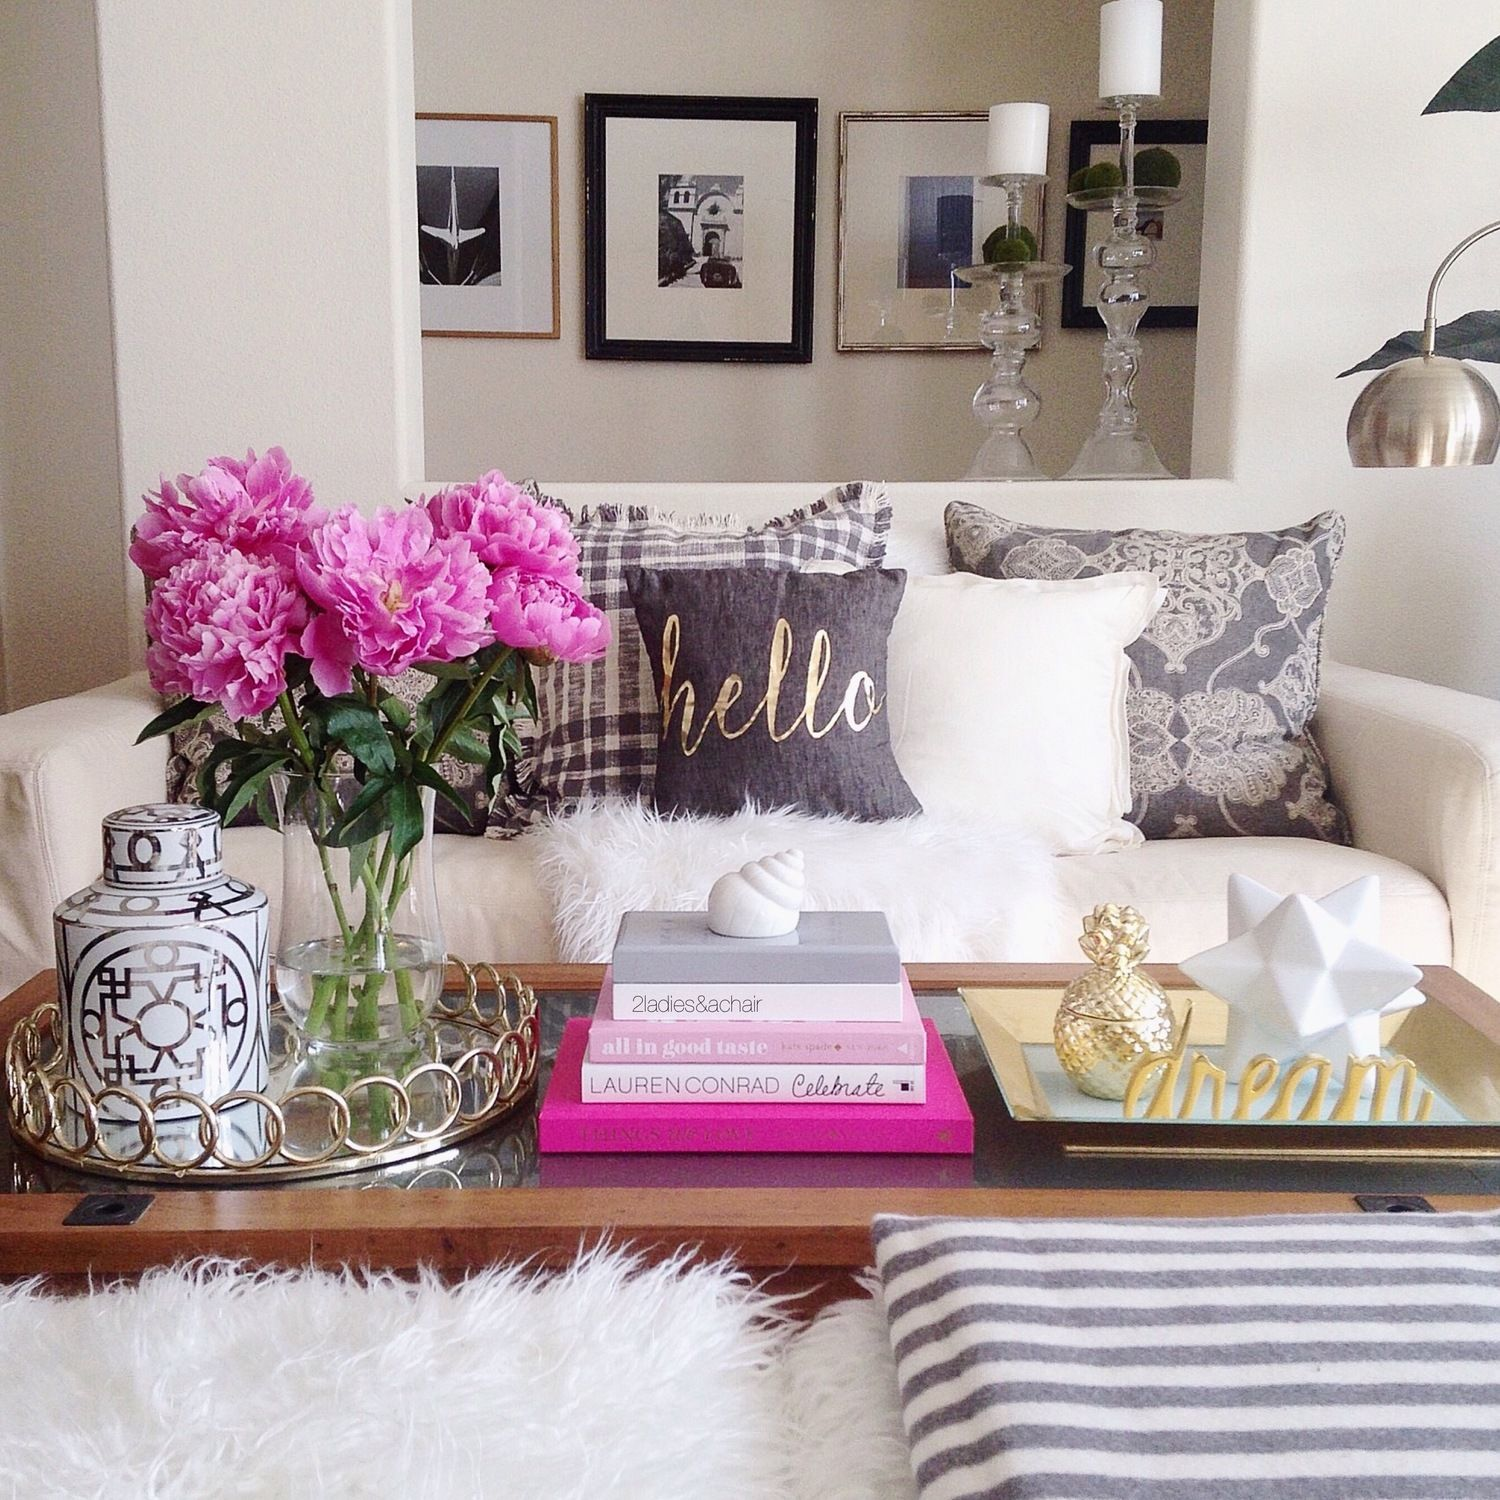 5 Useful Tips When Decorating Your Coffee Table 2 Ladies A Chair